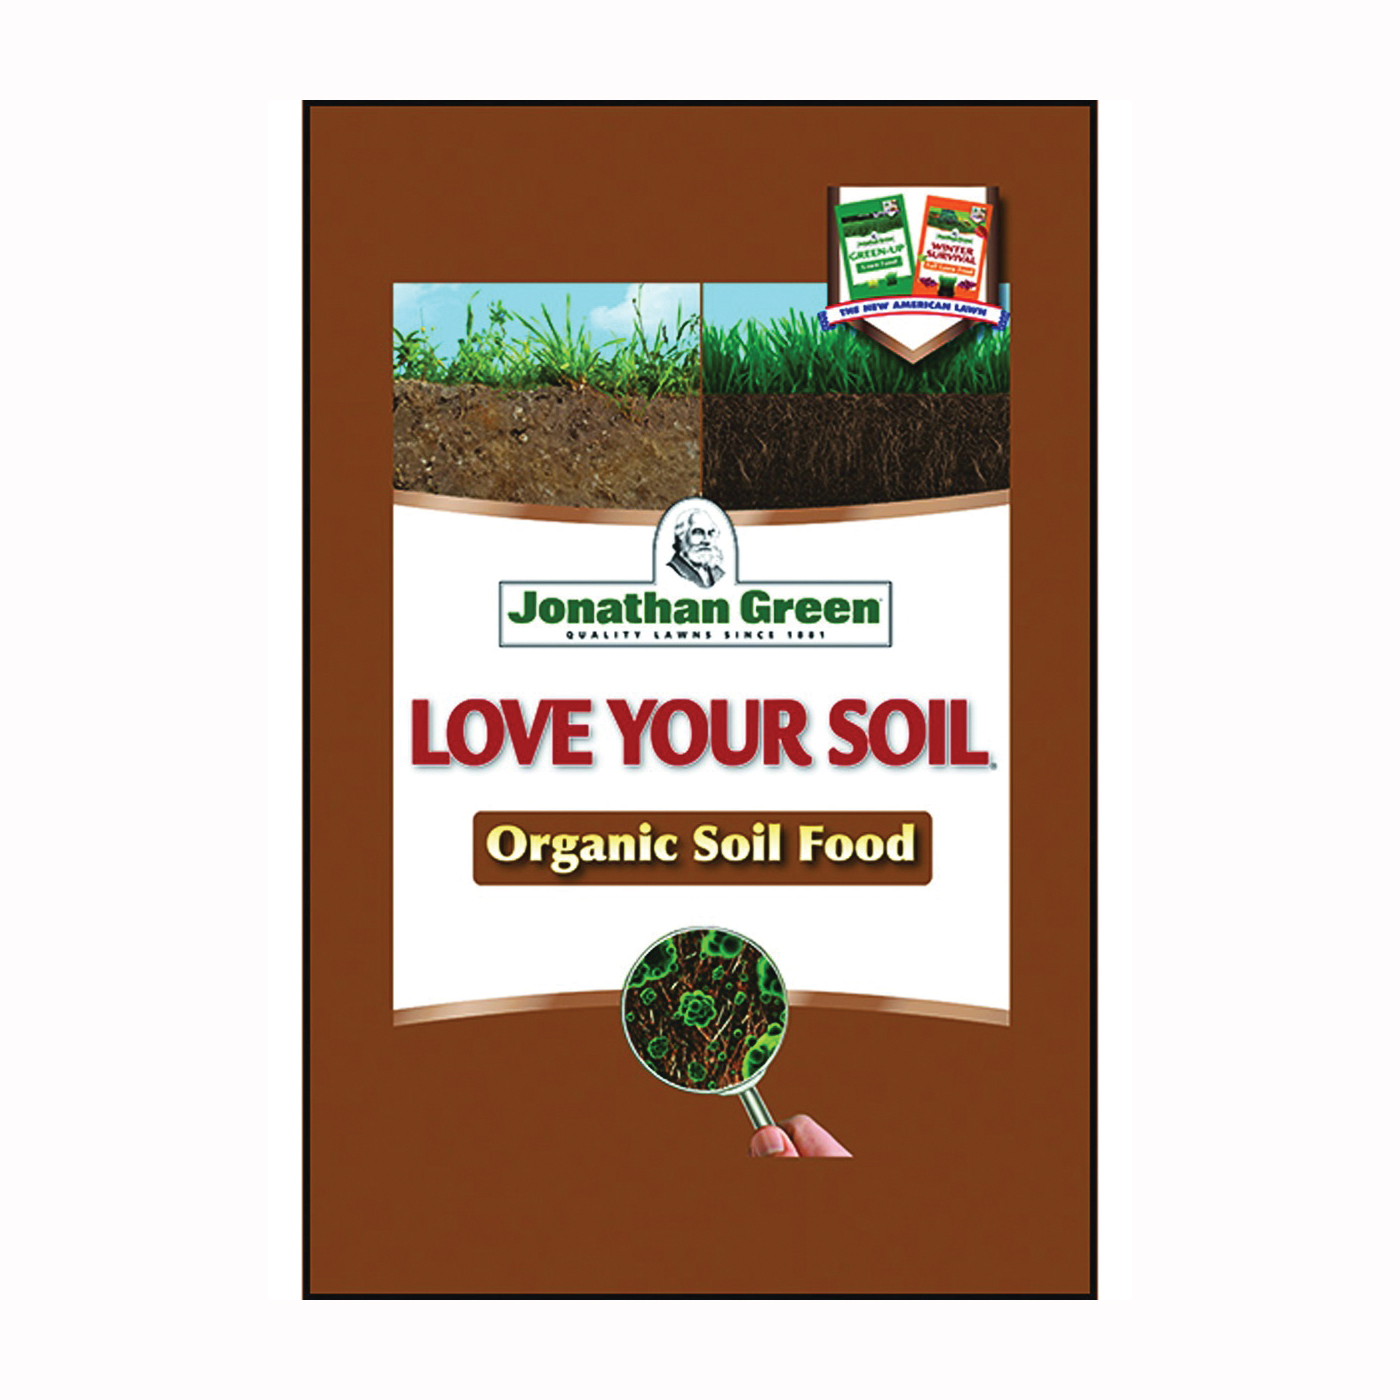 Picture of Jonathan Green Love Your Soil 12192 Organic Lawn Fertilizer, Granular, 3.6 lb Package, Bag